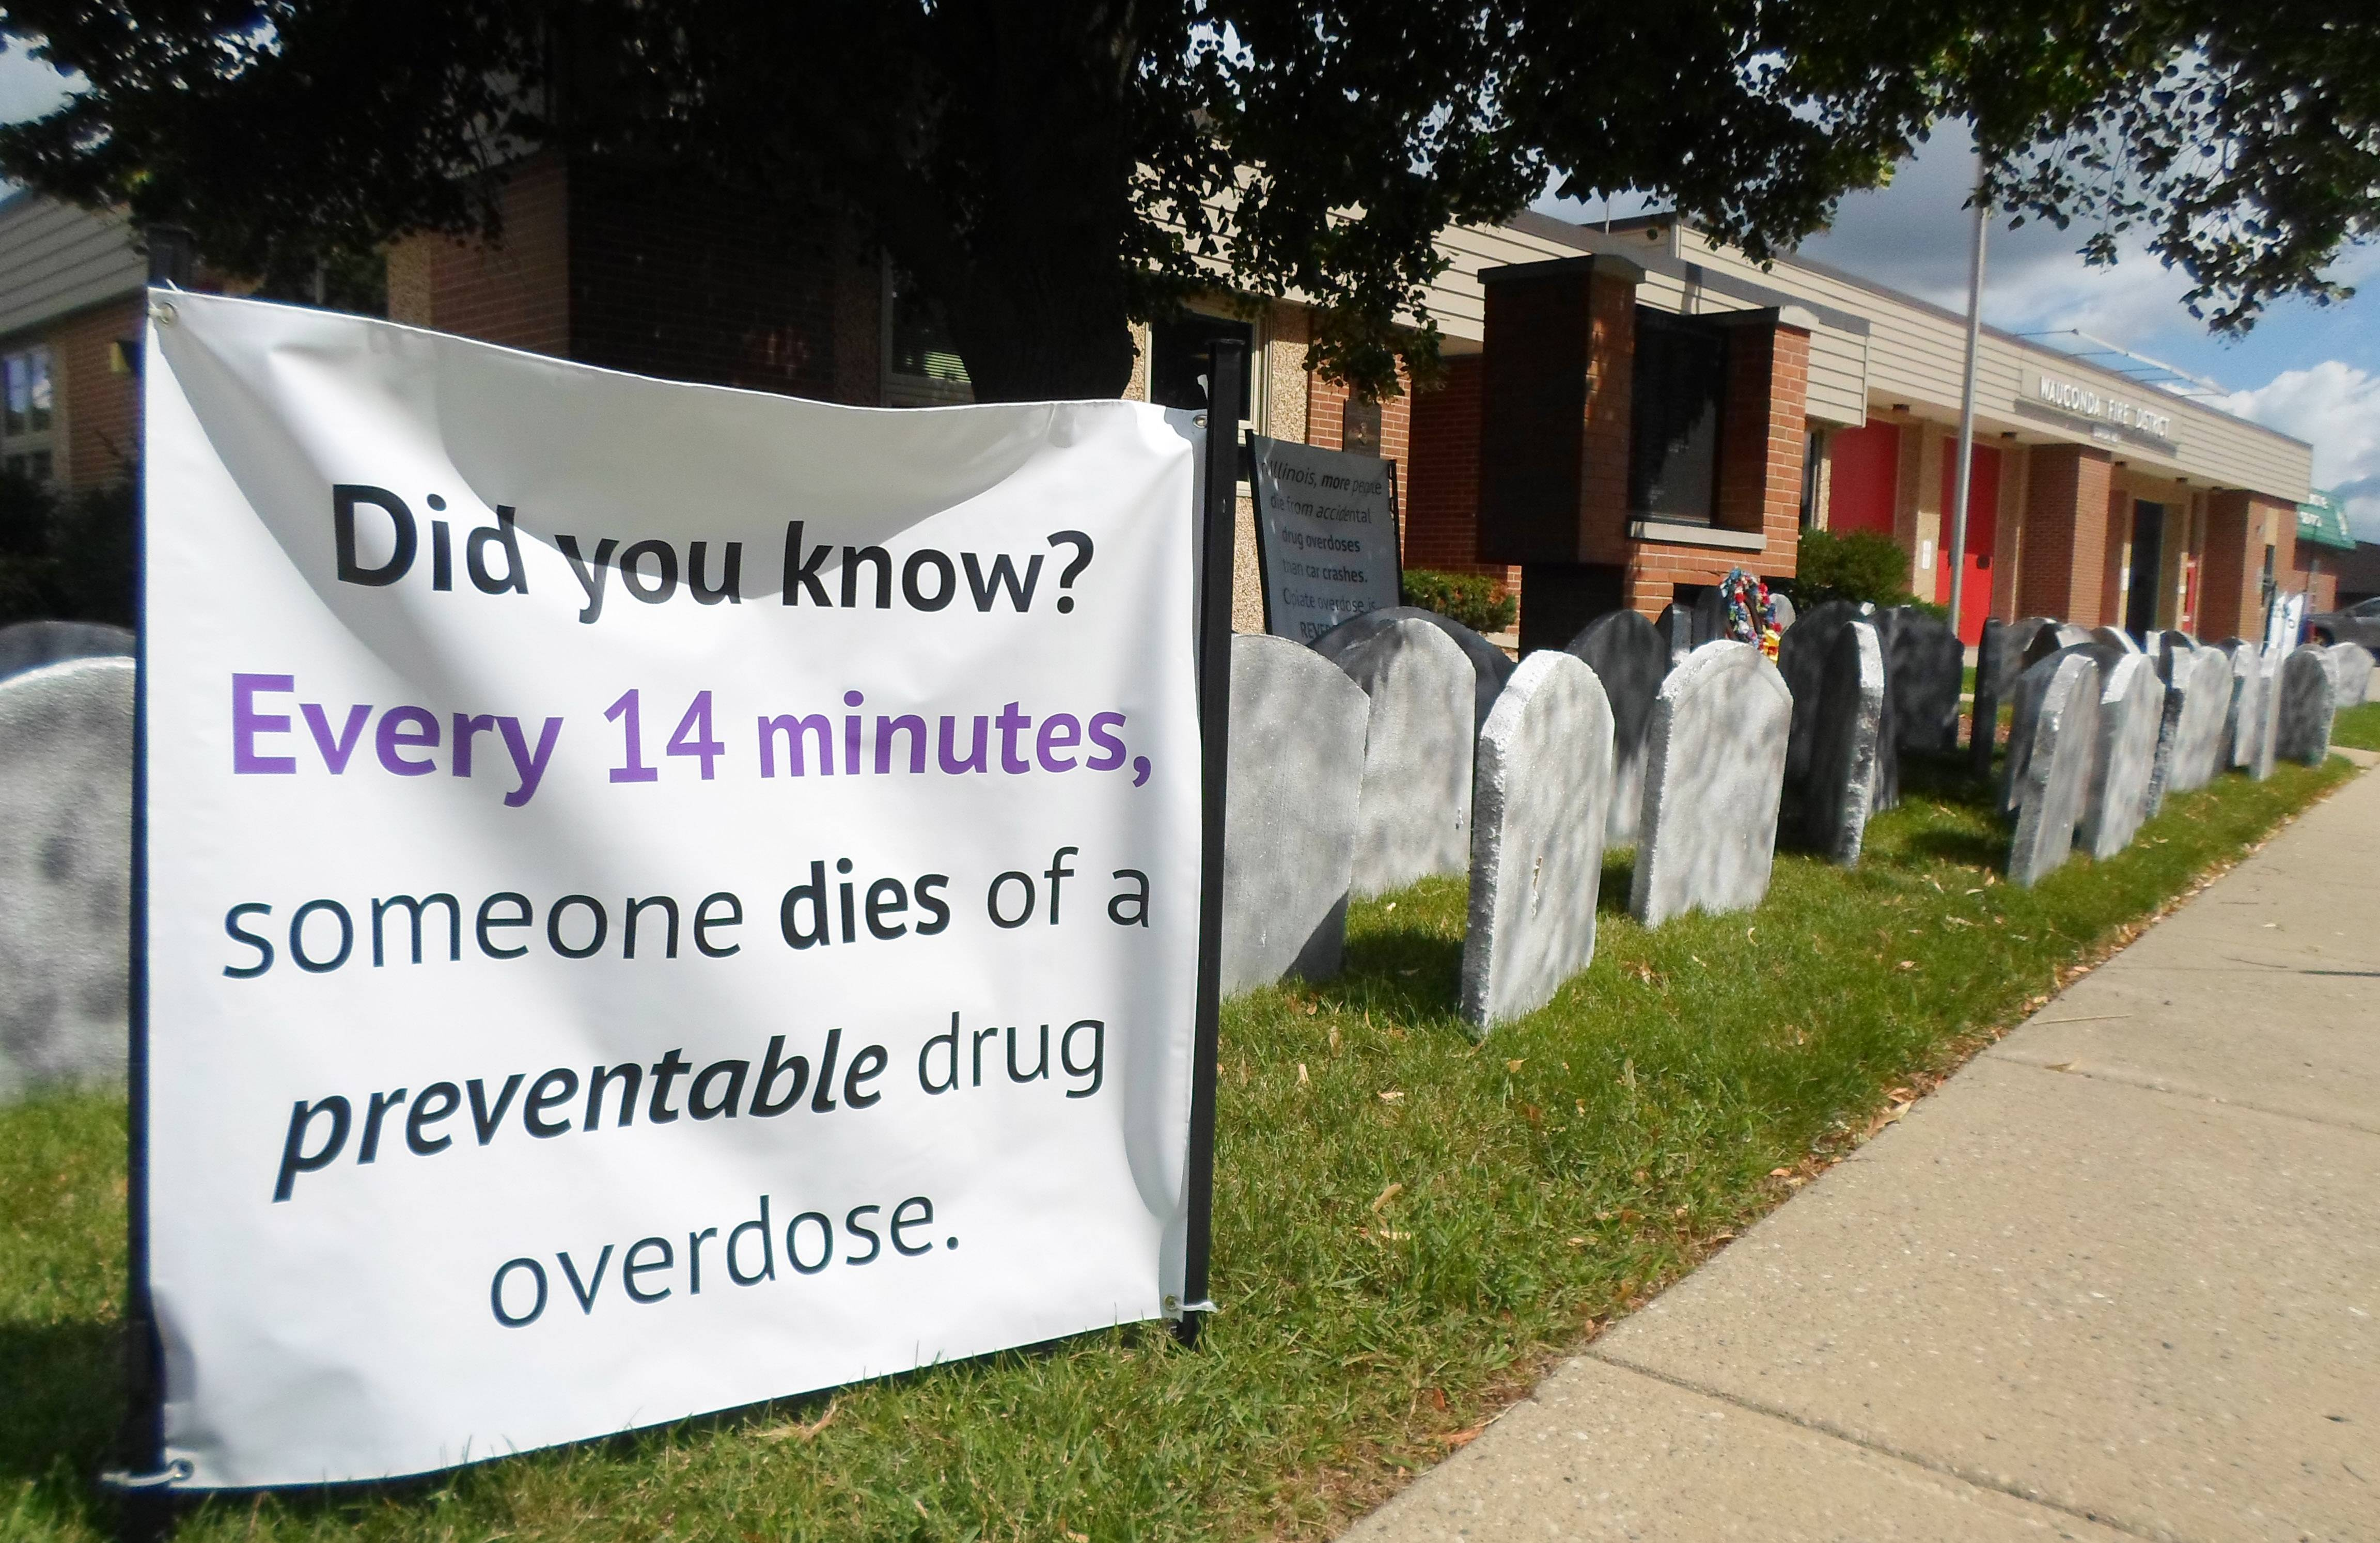 The tombstone display outside of the Wauconda Fire Department on Route 176 is intended to bring awareness to the Illinois Overdose Awareness Day on Aug. 30.